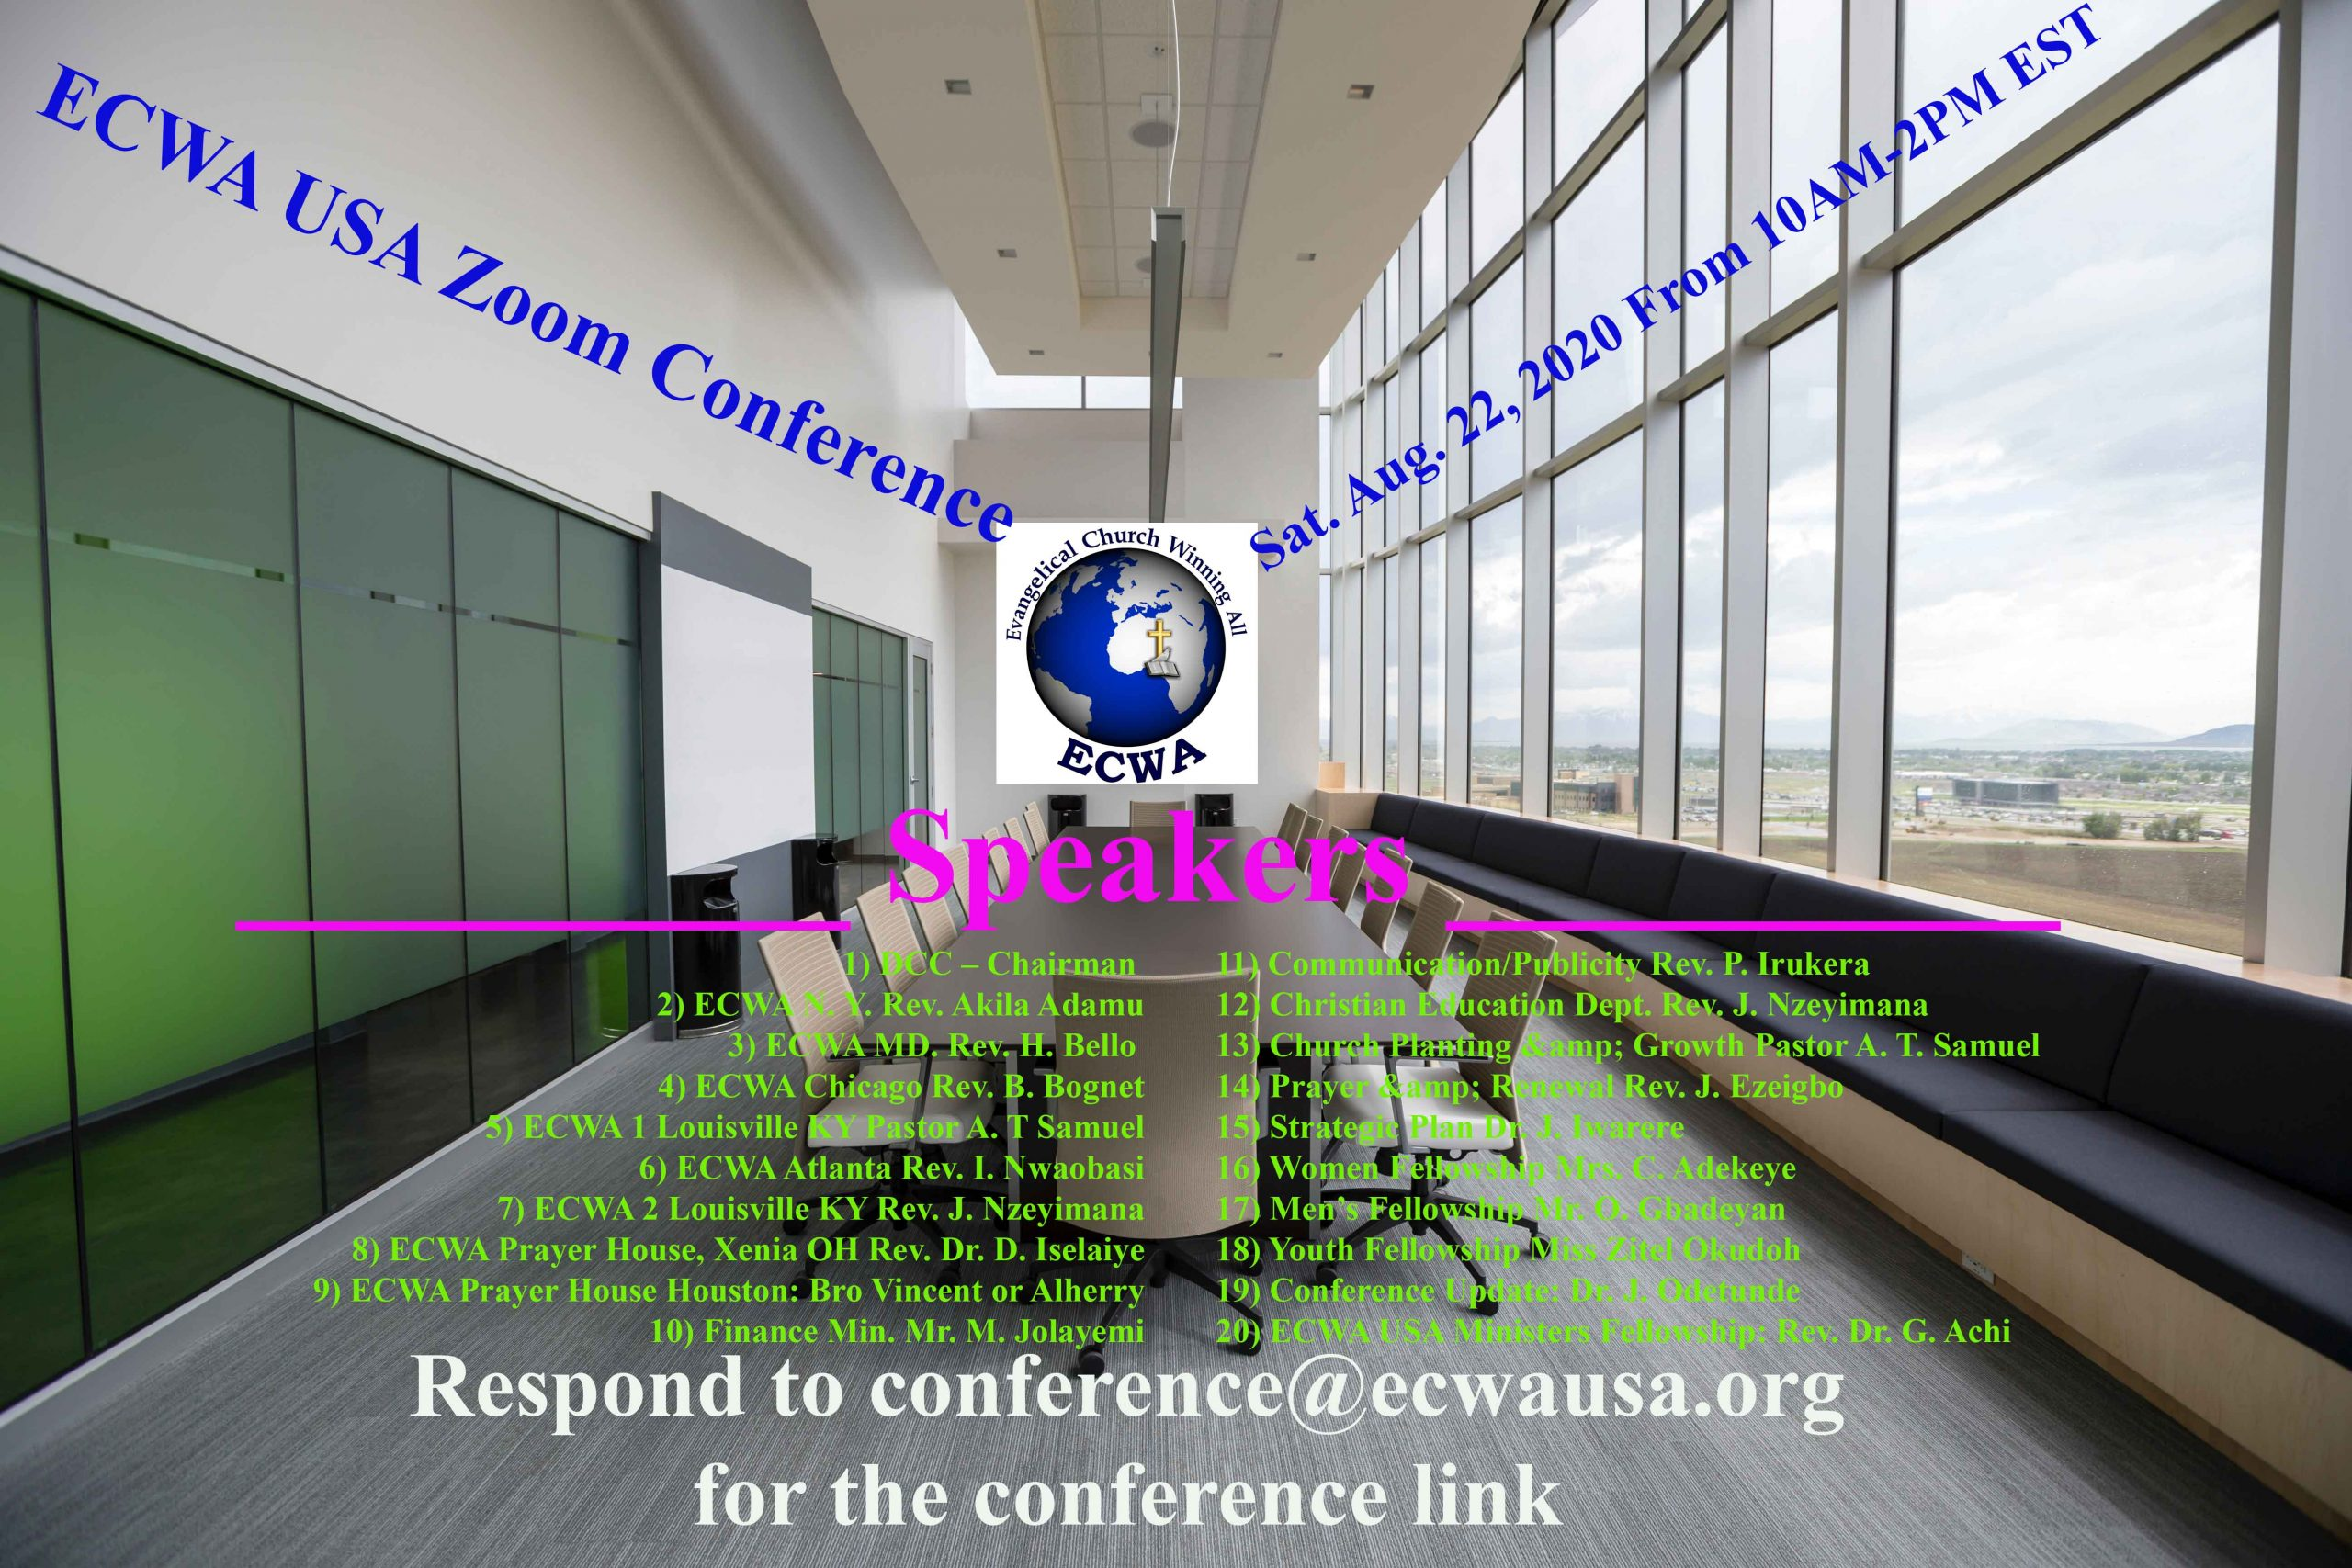 ECWA USA Zoom Conference - 22 August 2020